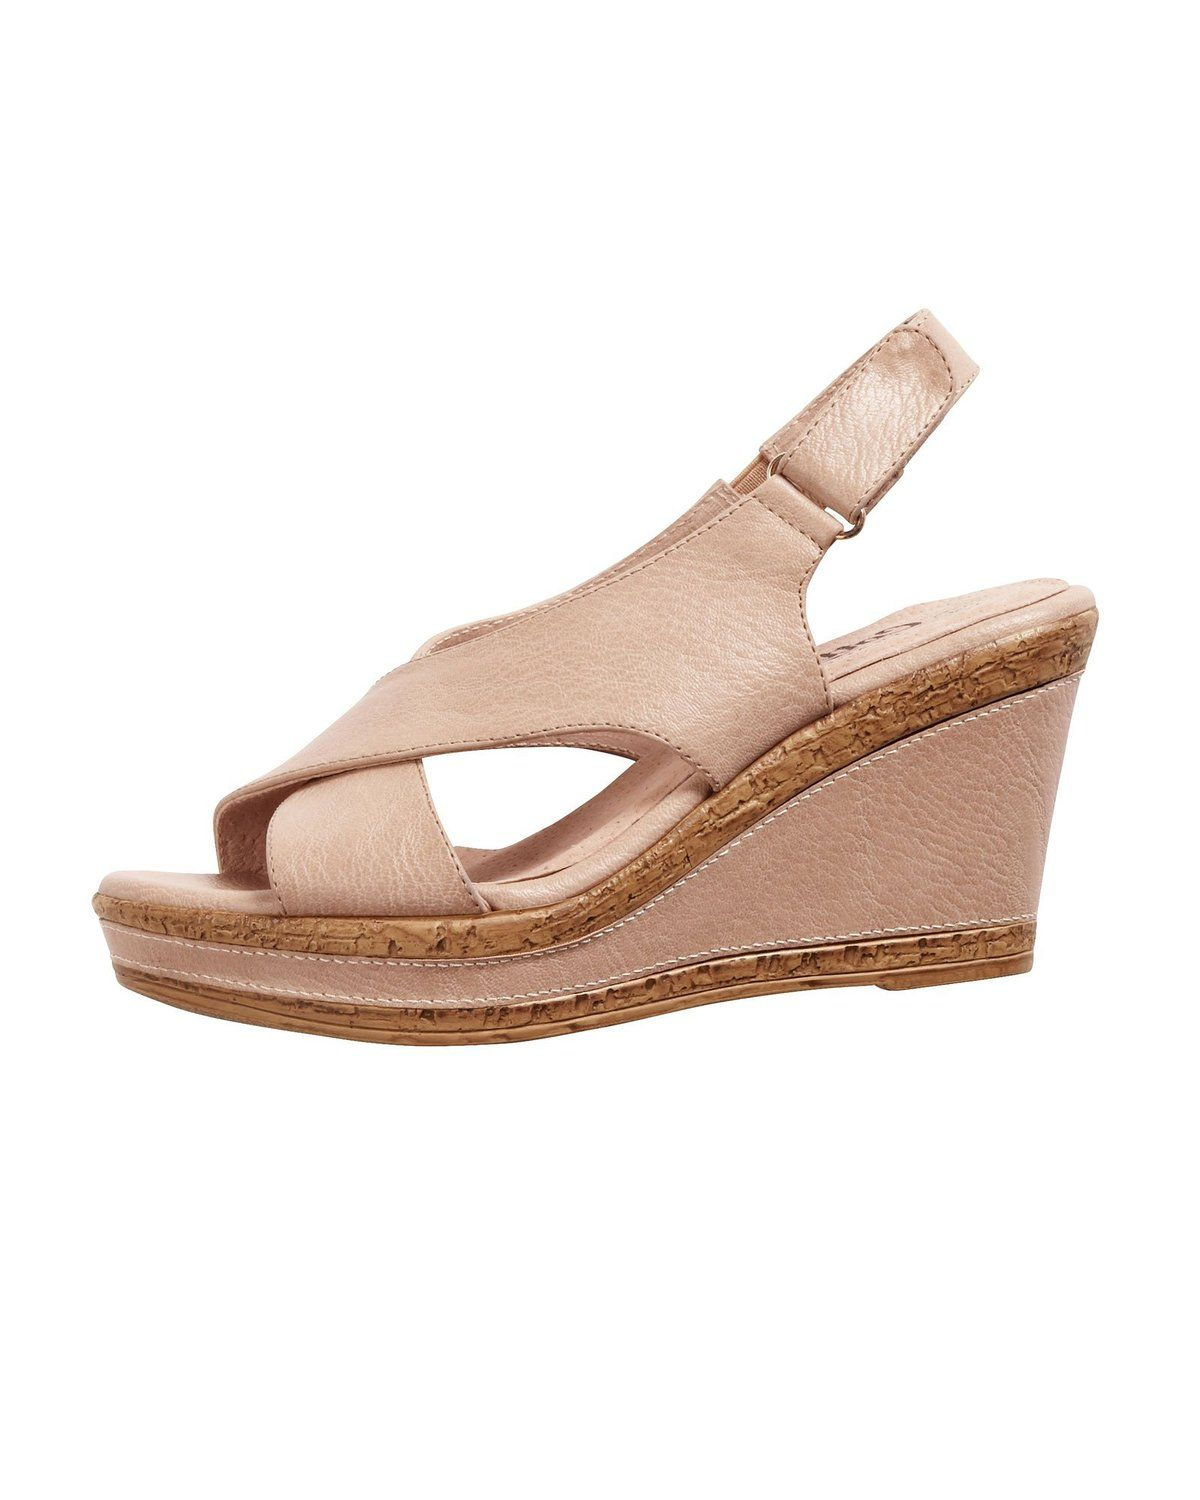 01934d5d9a302 Cotton Traders Womens Ladies Comfort Sling-Back Easy Fit Wedge ...